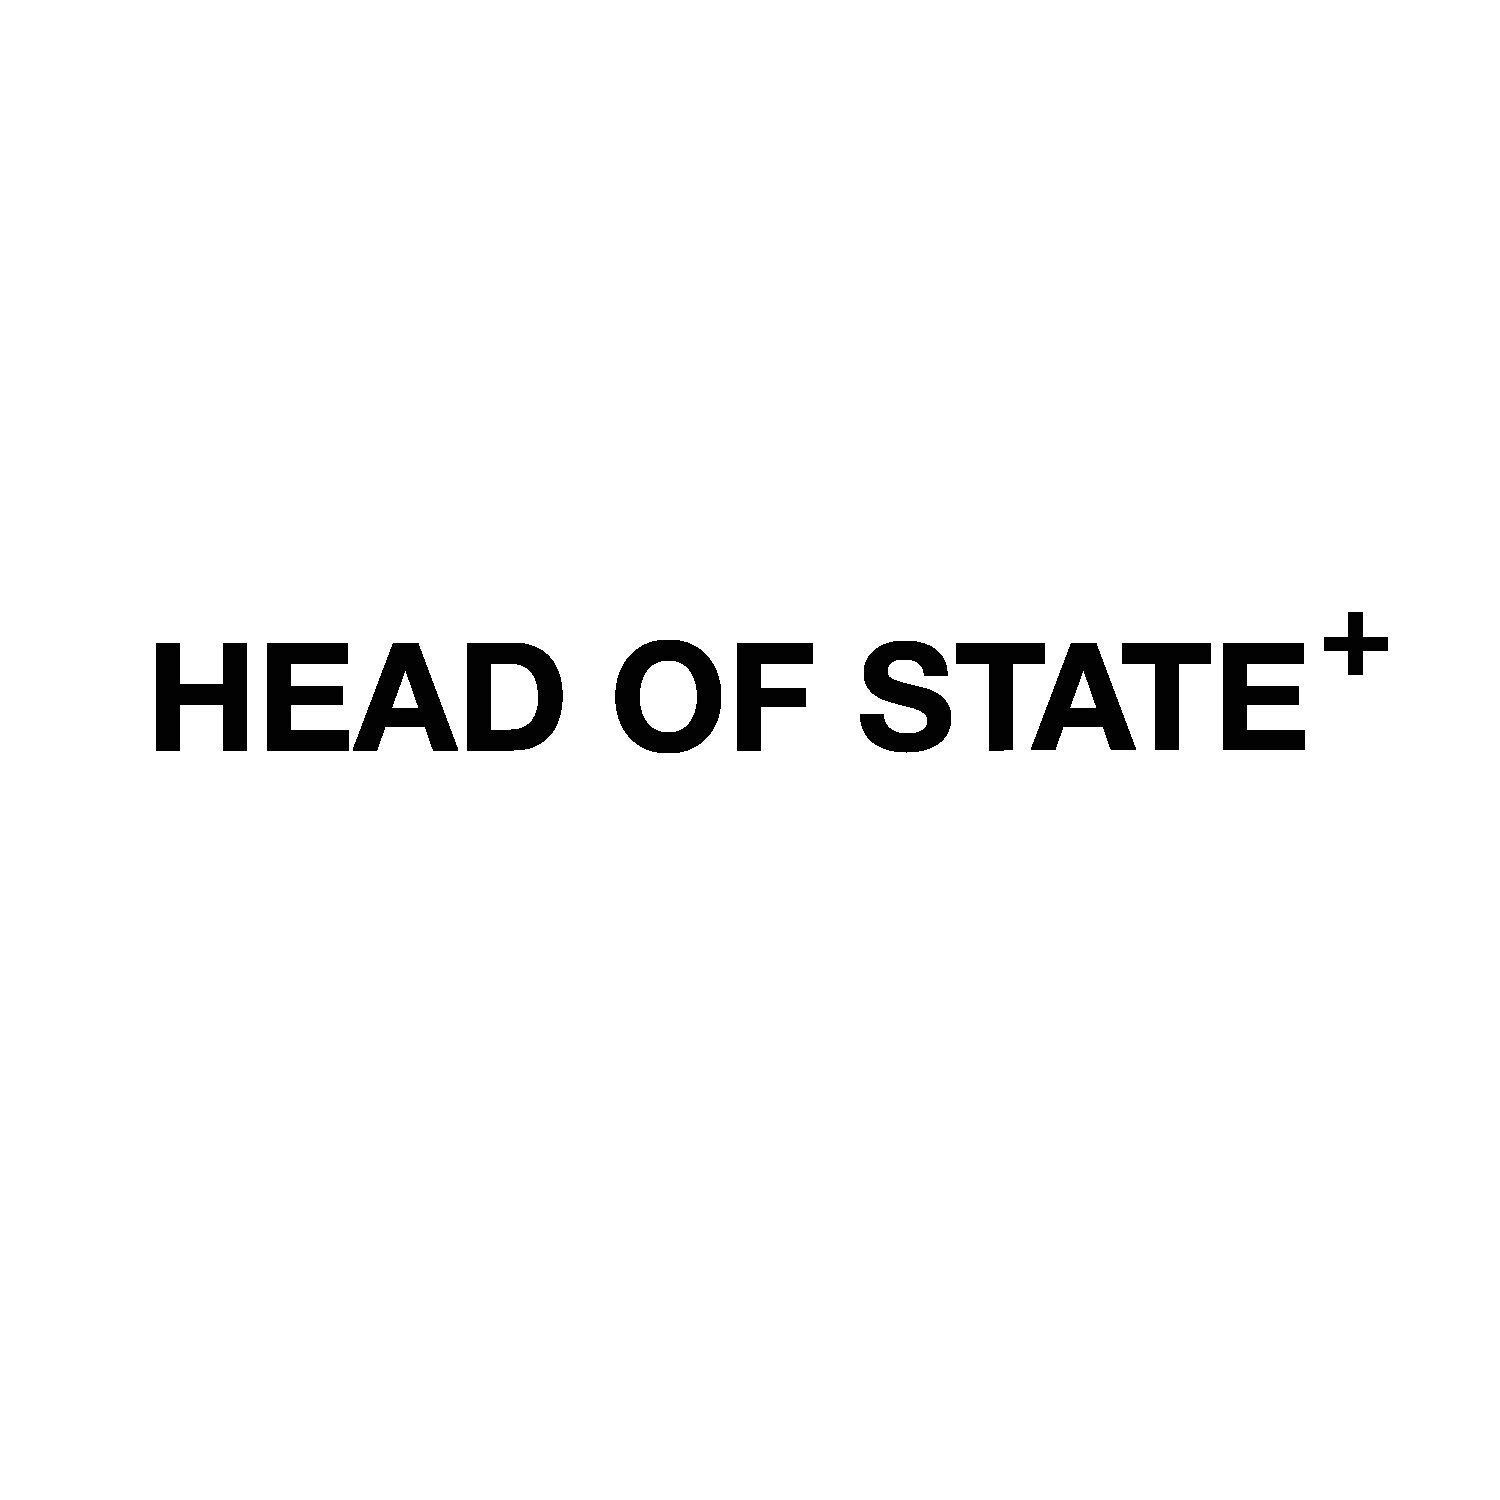 HEAD OF STATE+